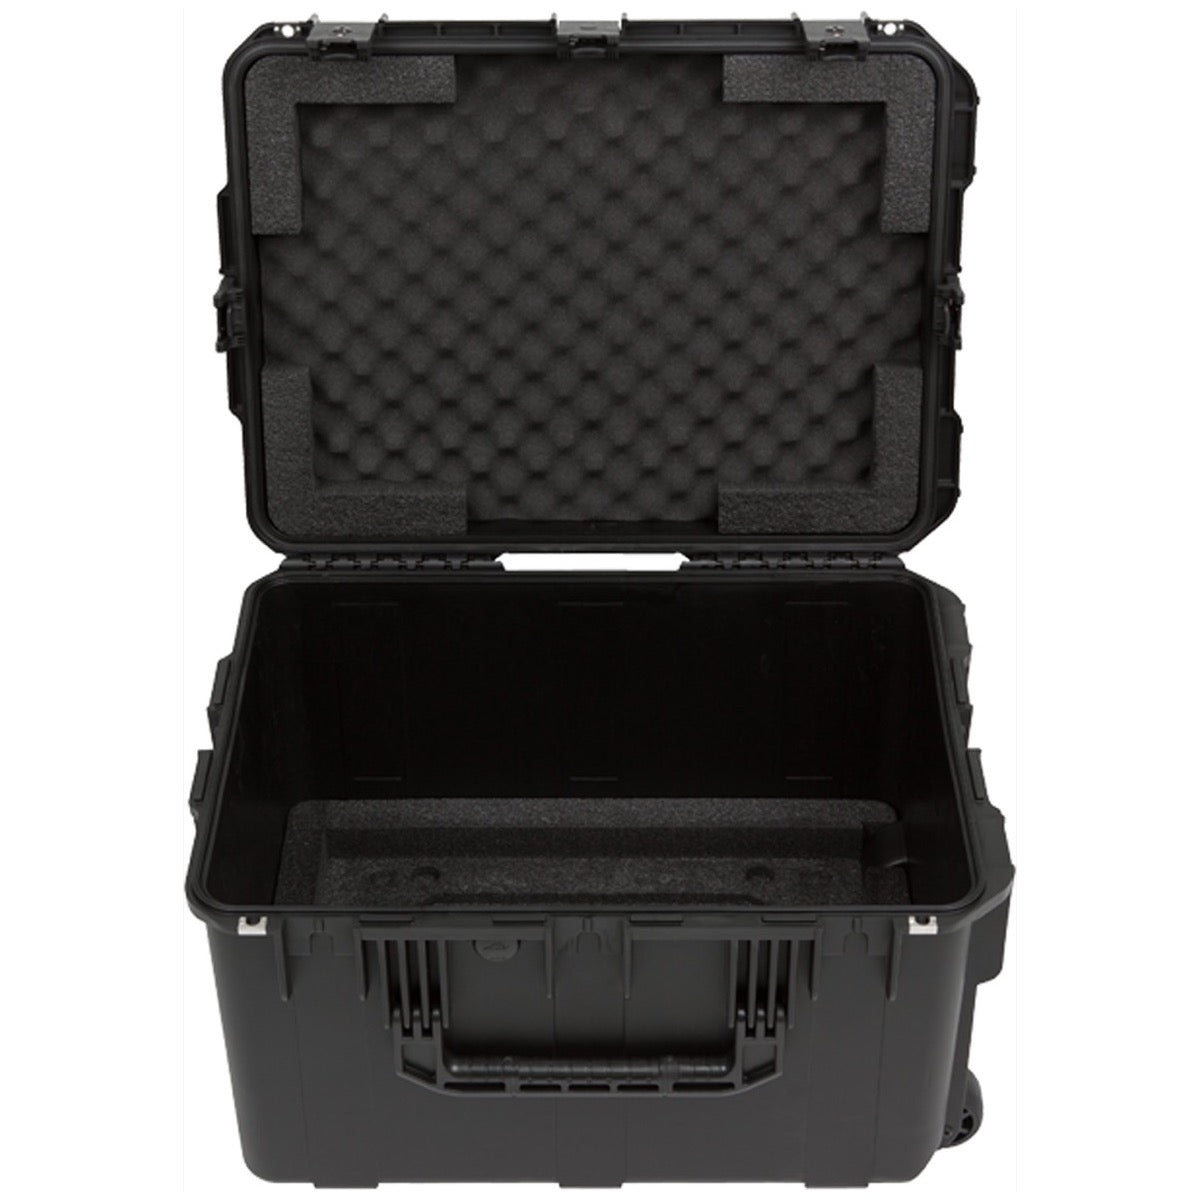 SKB iSeries Fly Rack Case, 3i-2317M146U, 6-Space